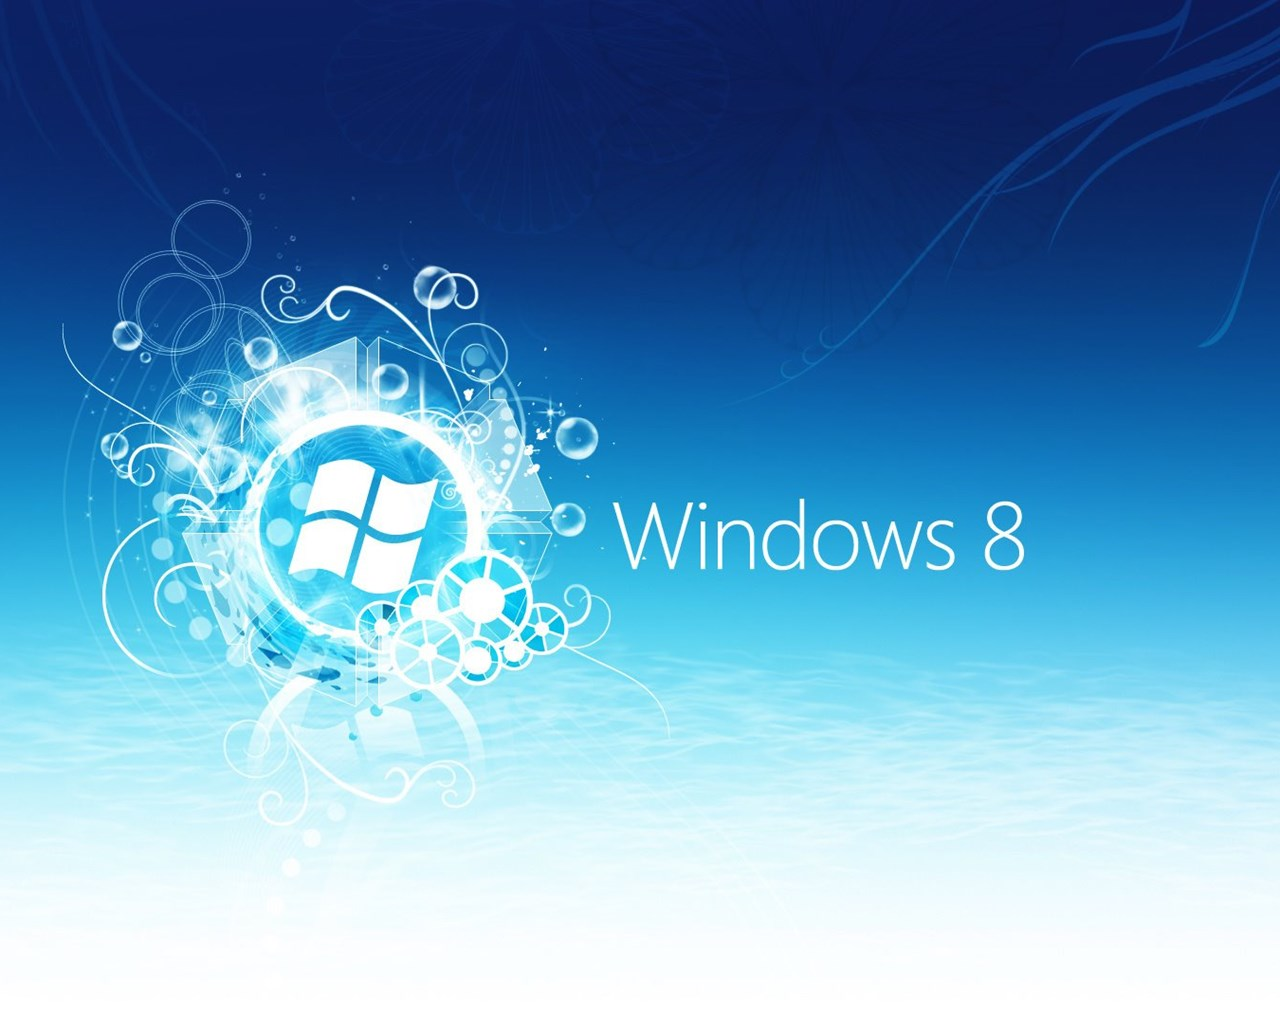 windows 8 wallpaper hd 3d for desktop blue i10 desktop background